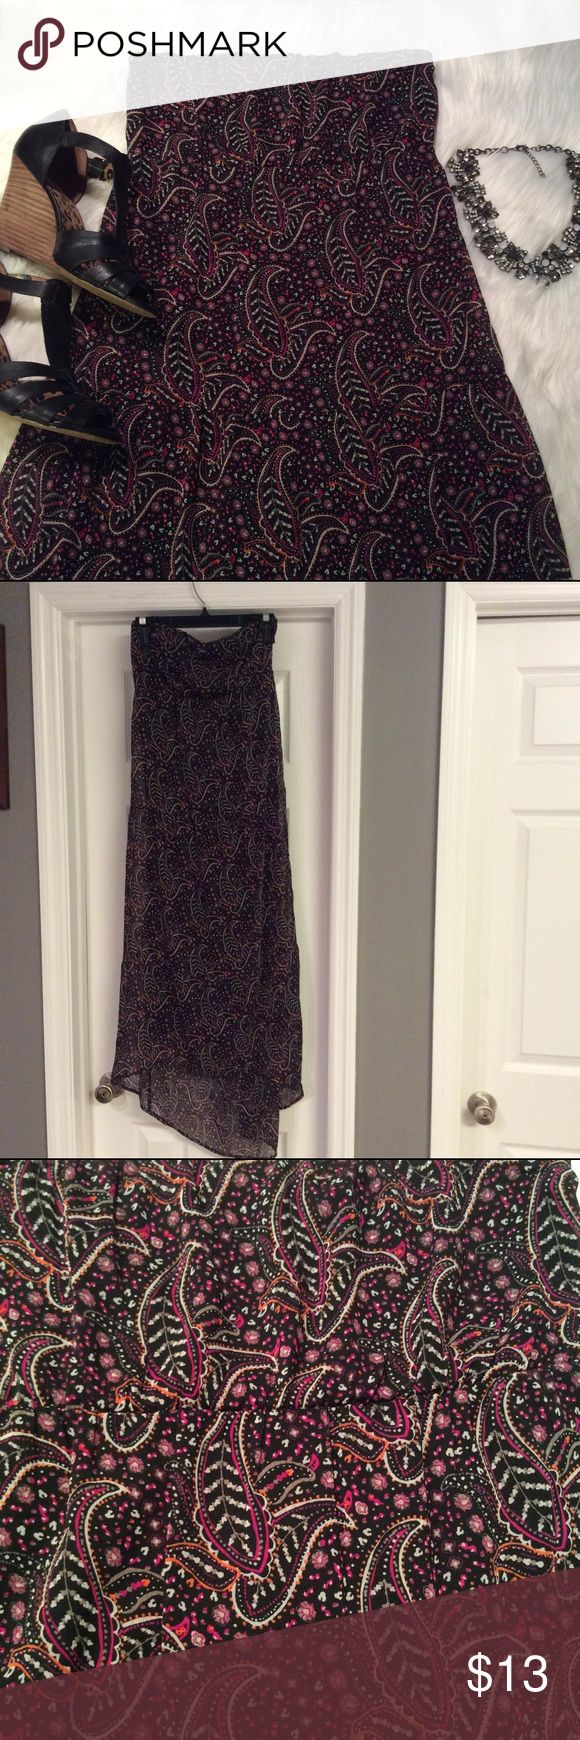 Old Navy Paisley Strapless Maxi Dress Worn once. Last pic is the same dress in a different print. Old Navy Dresses Strapless